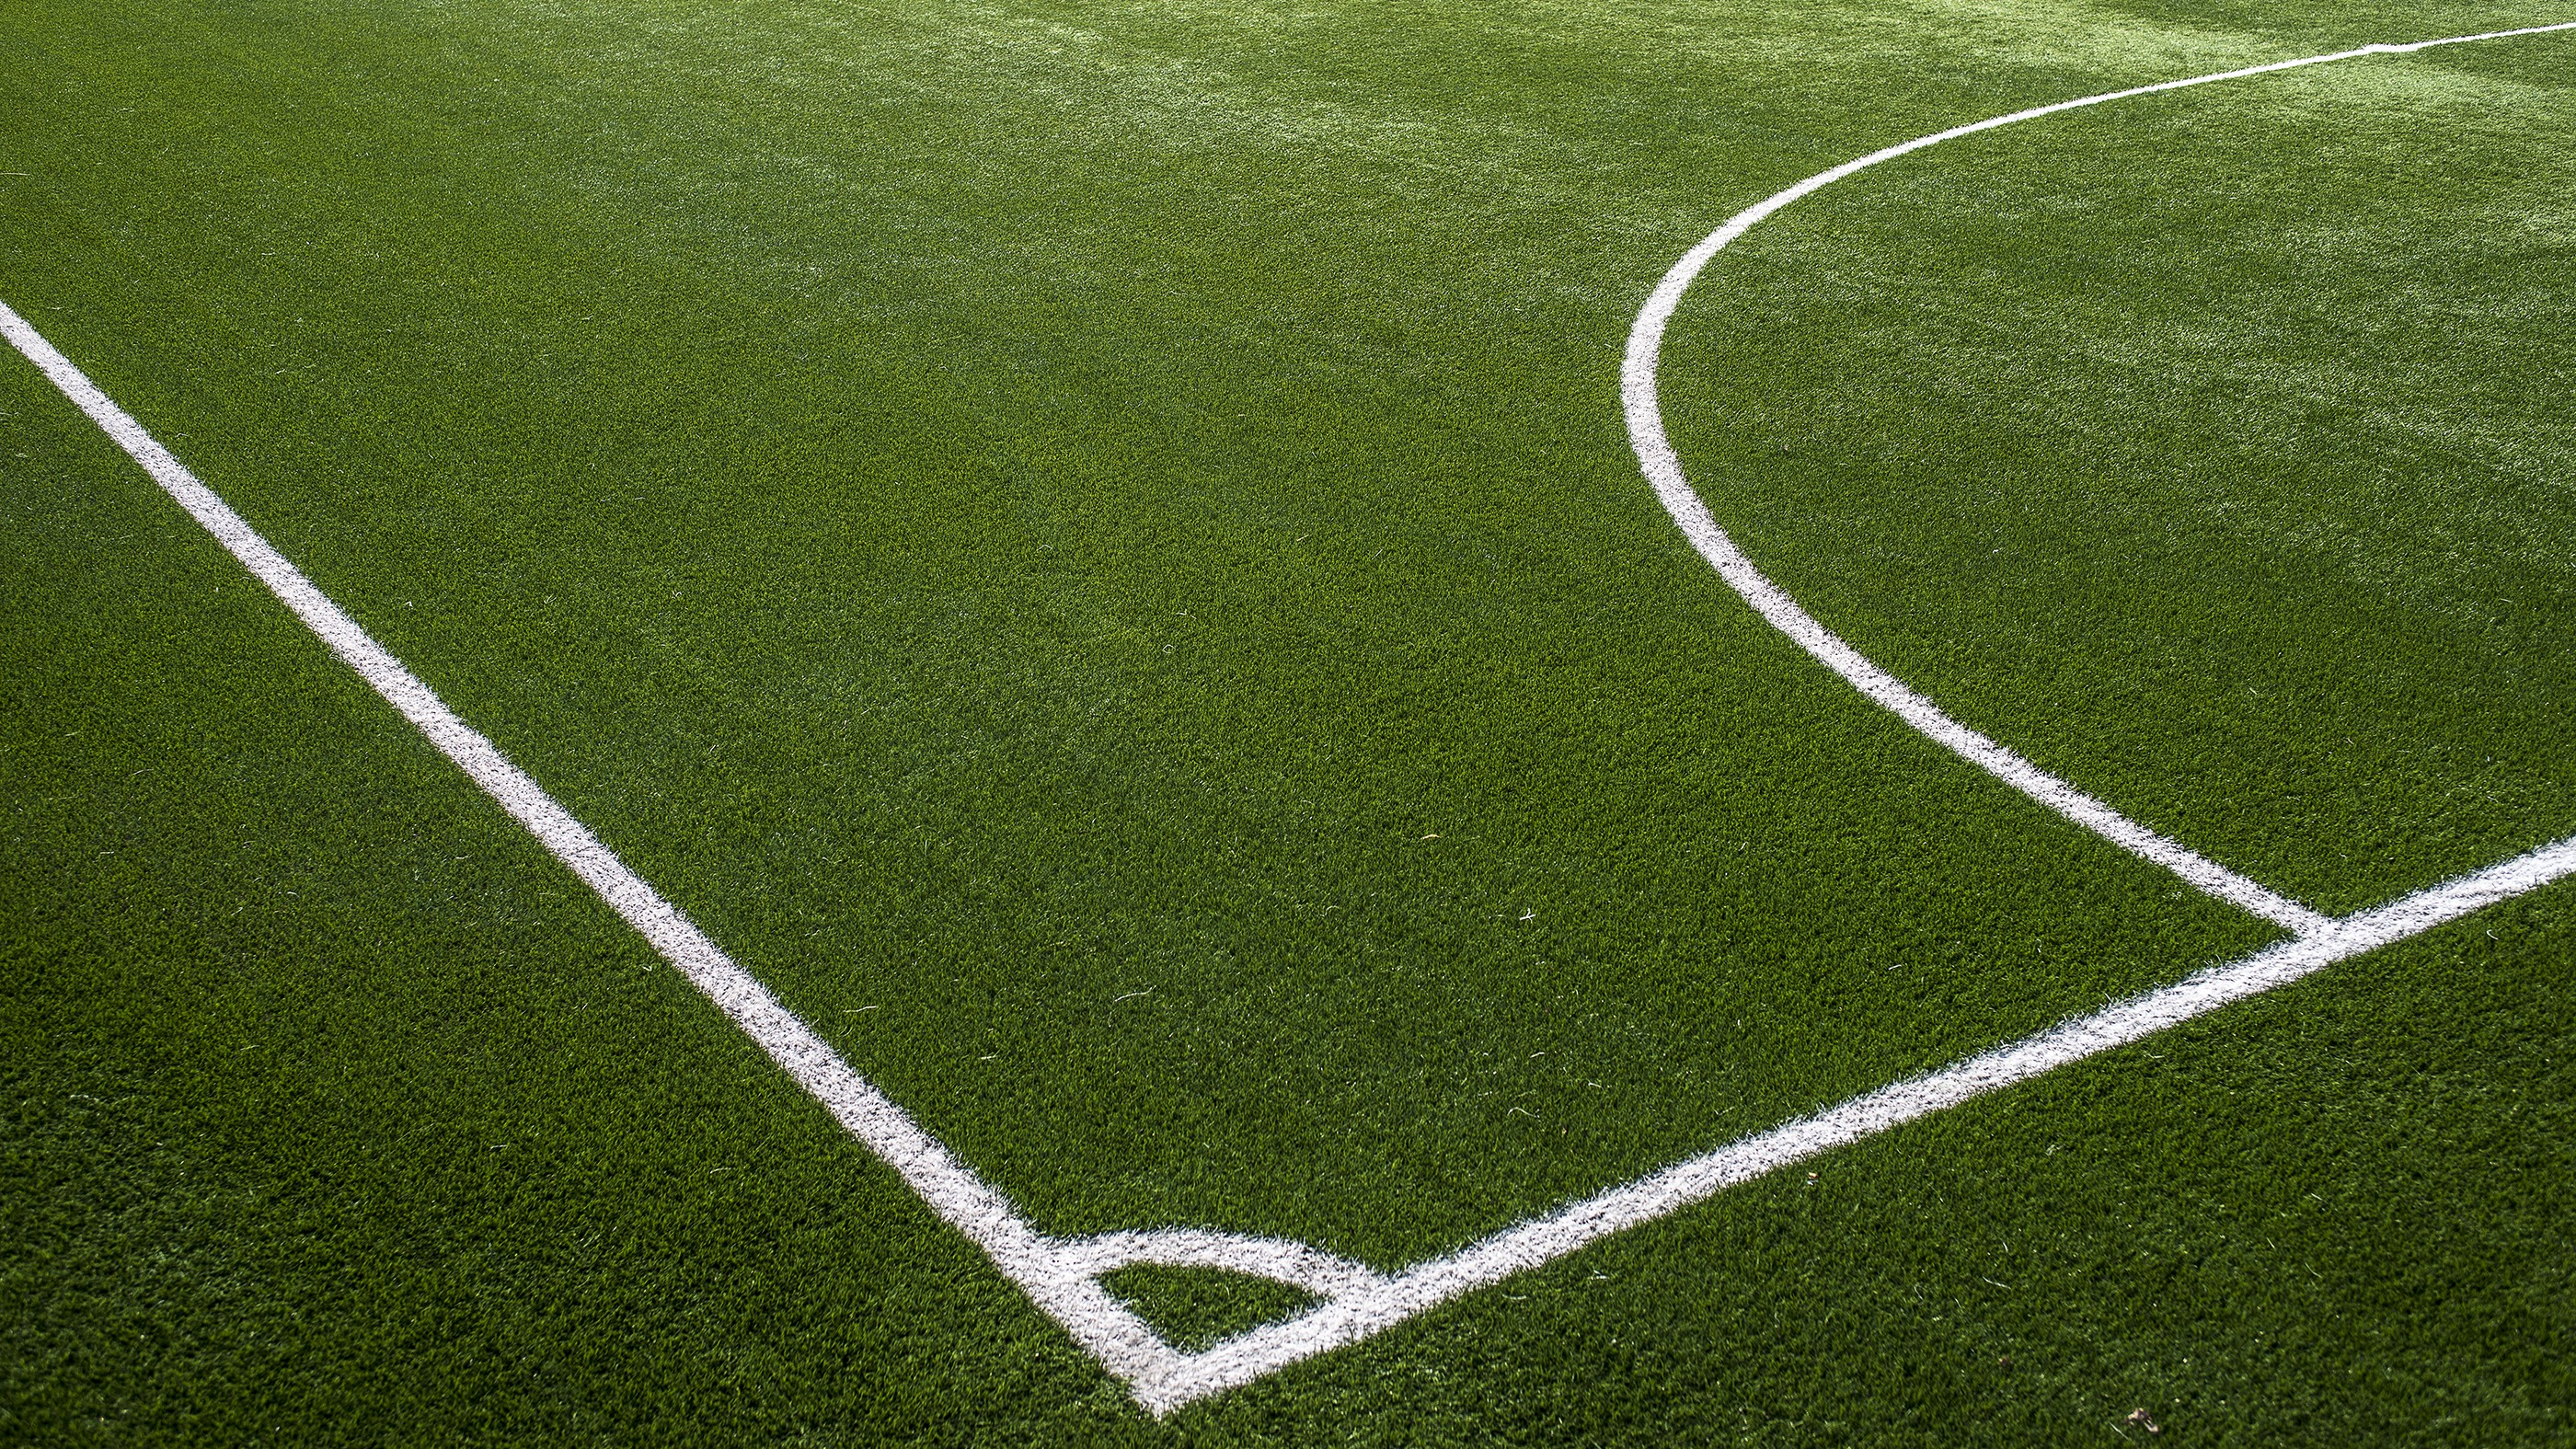 How safe is artificial turf? Vancouver Park Board commissioner calls for detailed examination